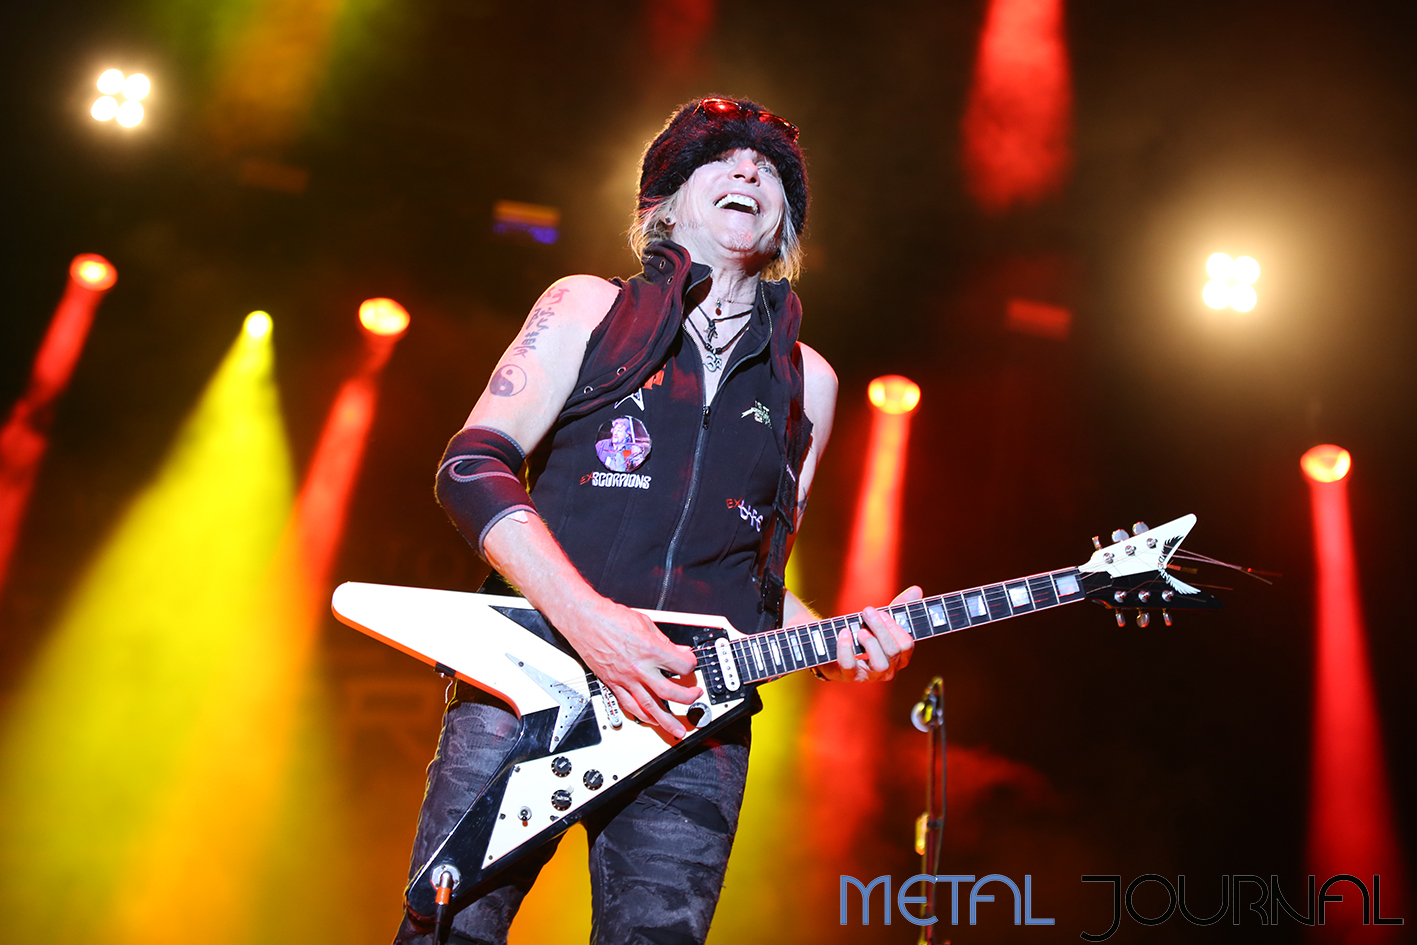 michael schenker fest - metal journal rock fest barcelona 2019 pic 3